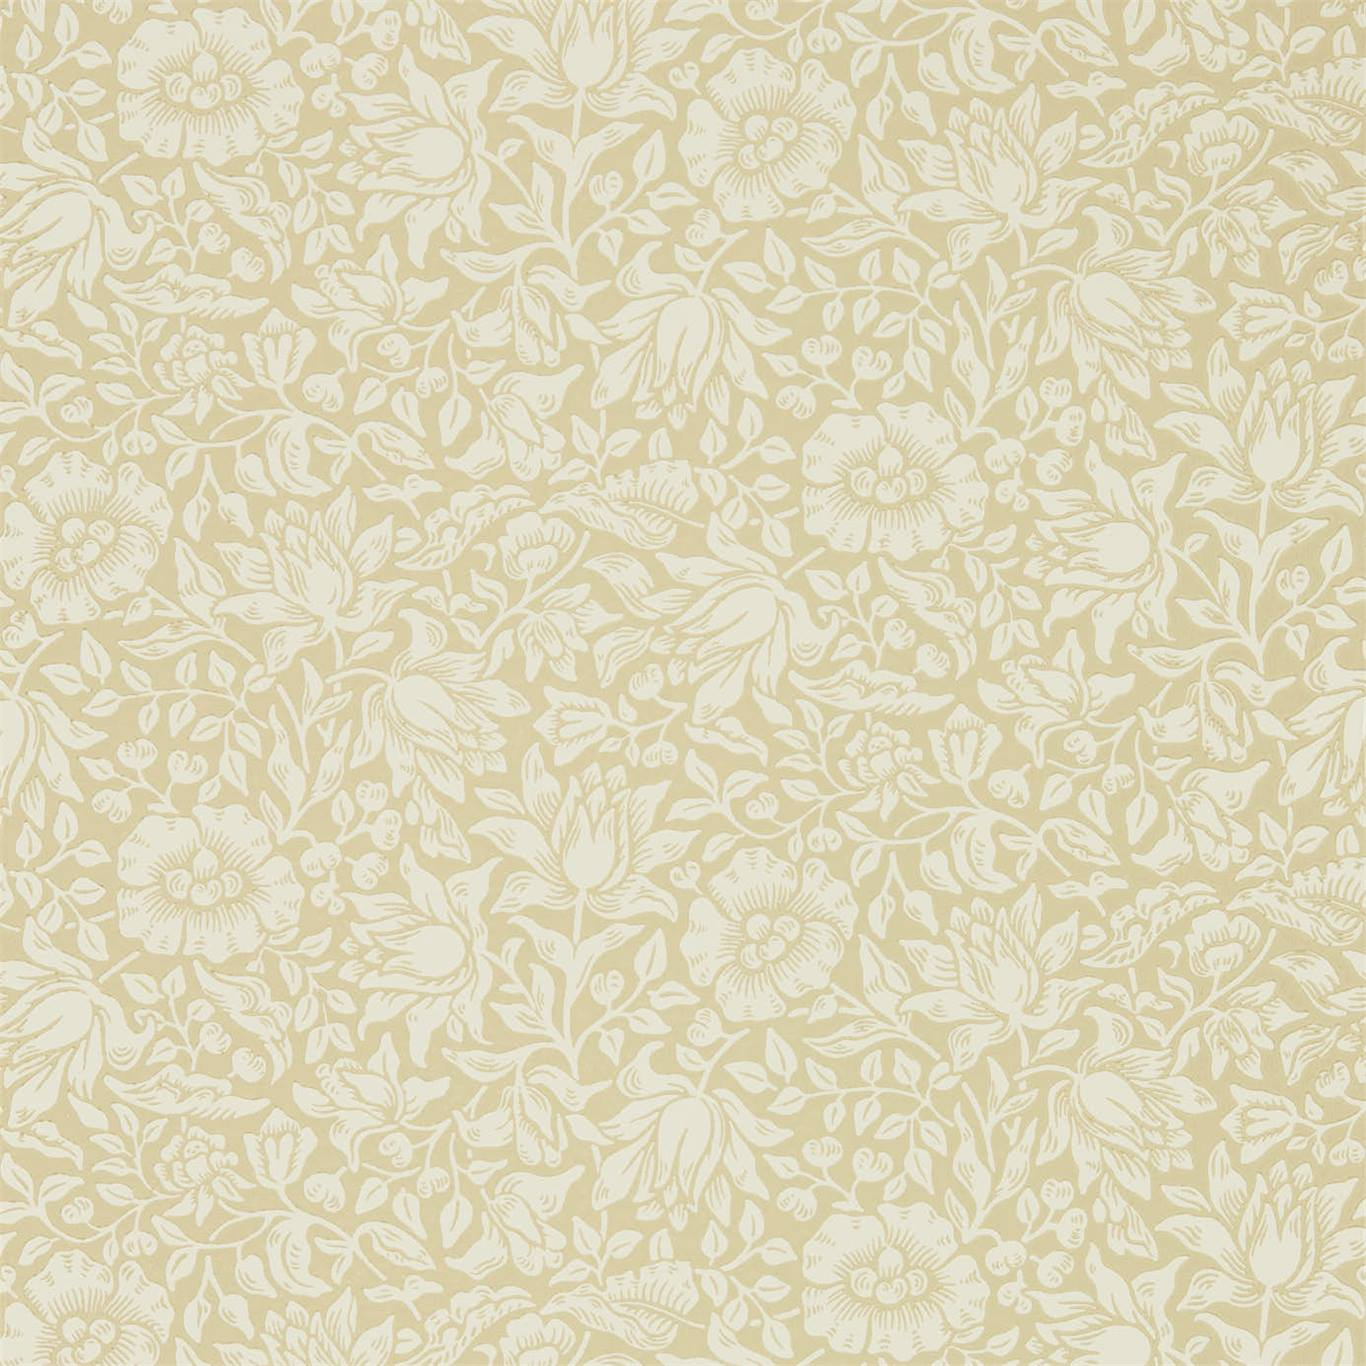 DMSW216677 Collection - Melsetter Wallpapers